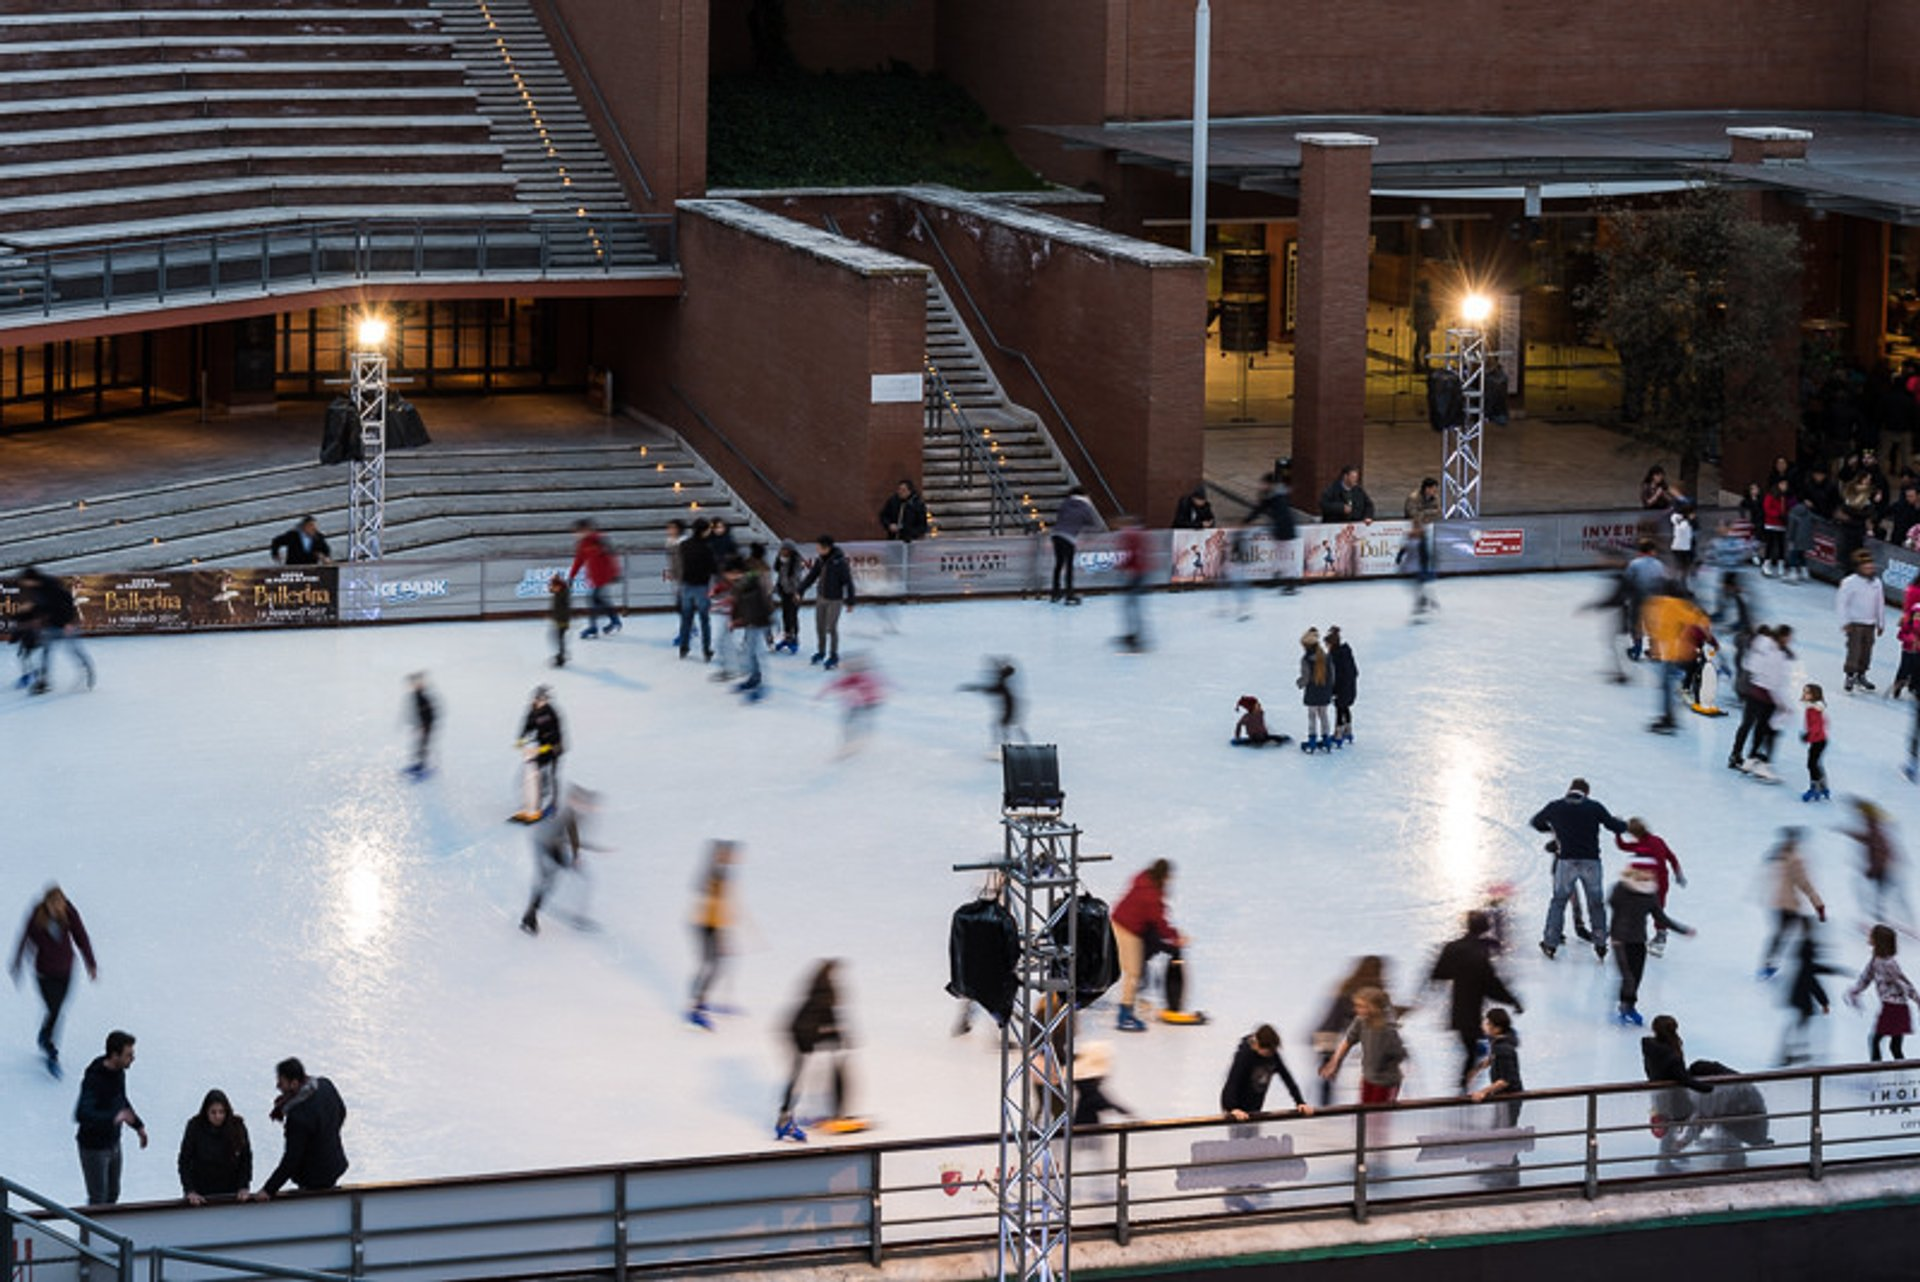 Ice Skating in Rome 2020 - Best Time